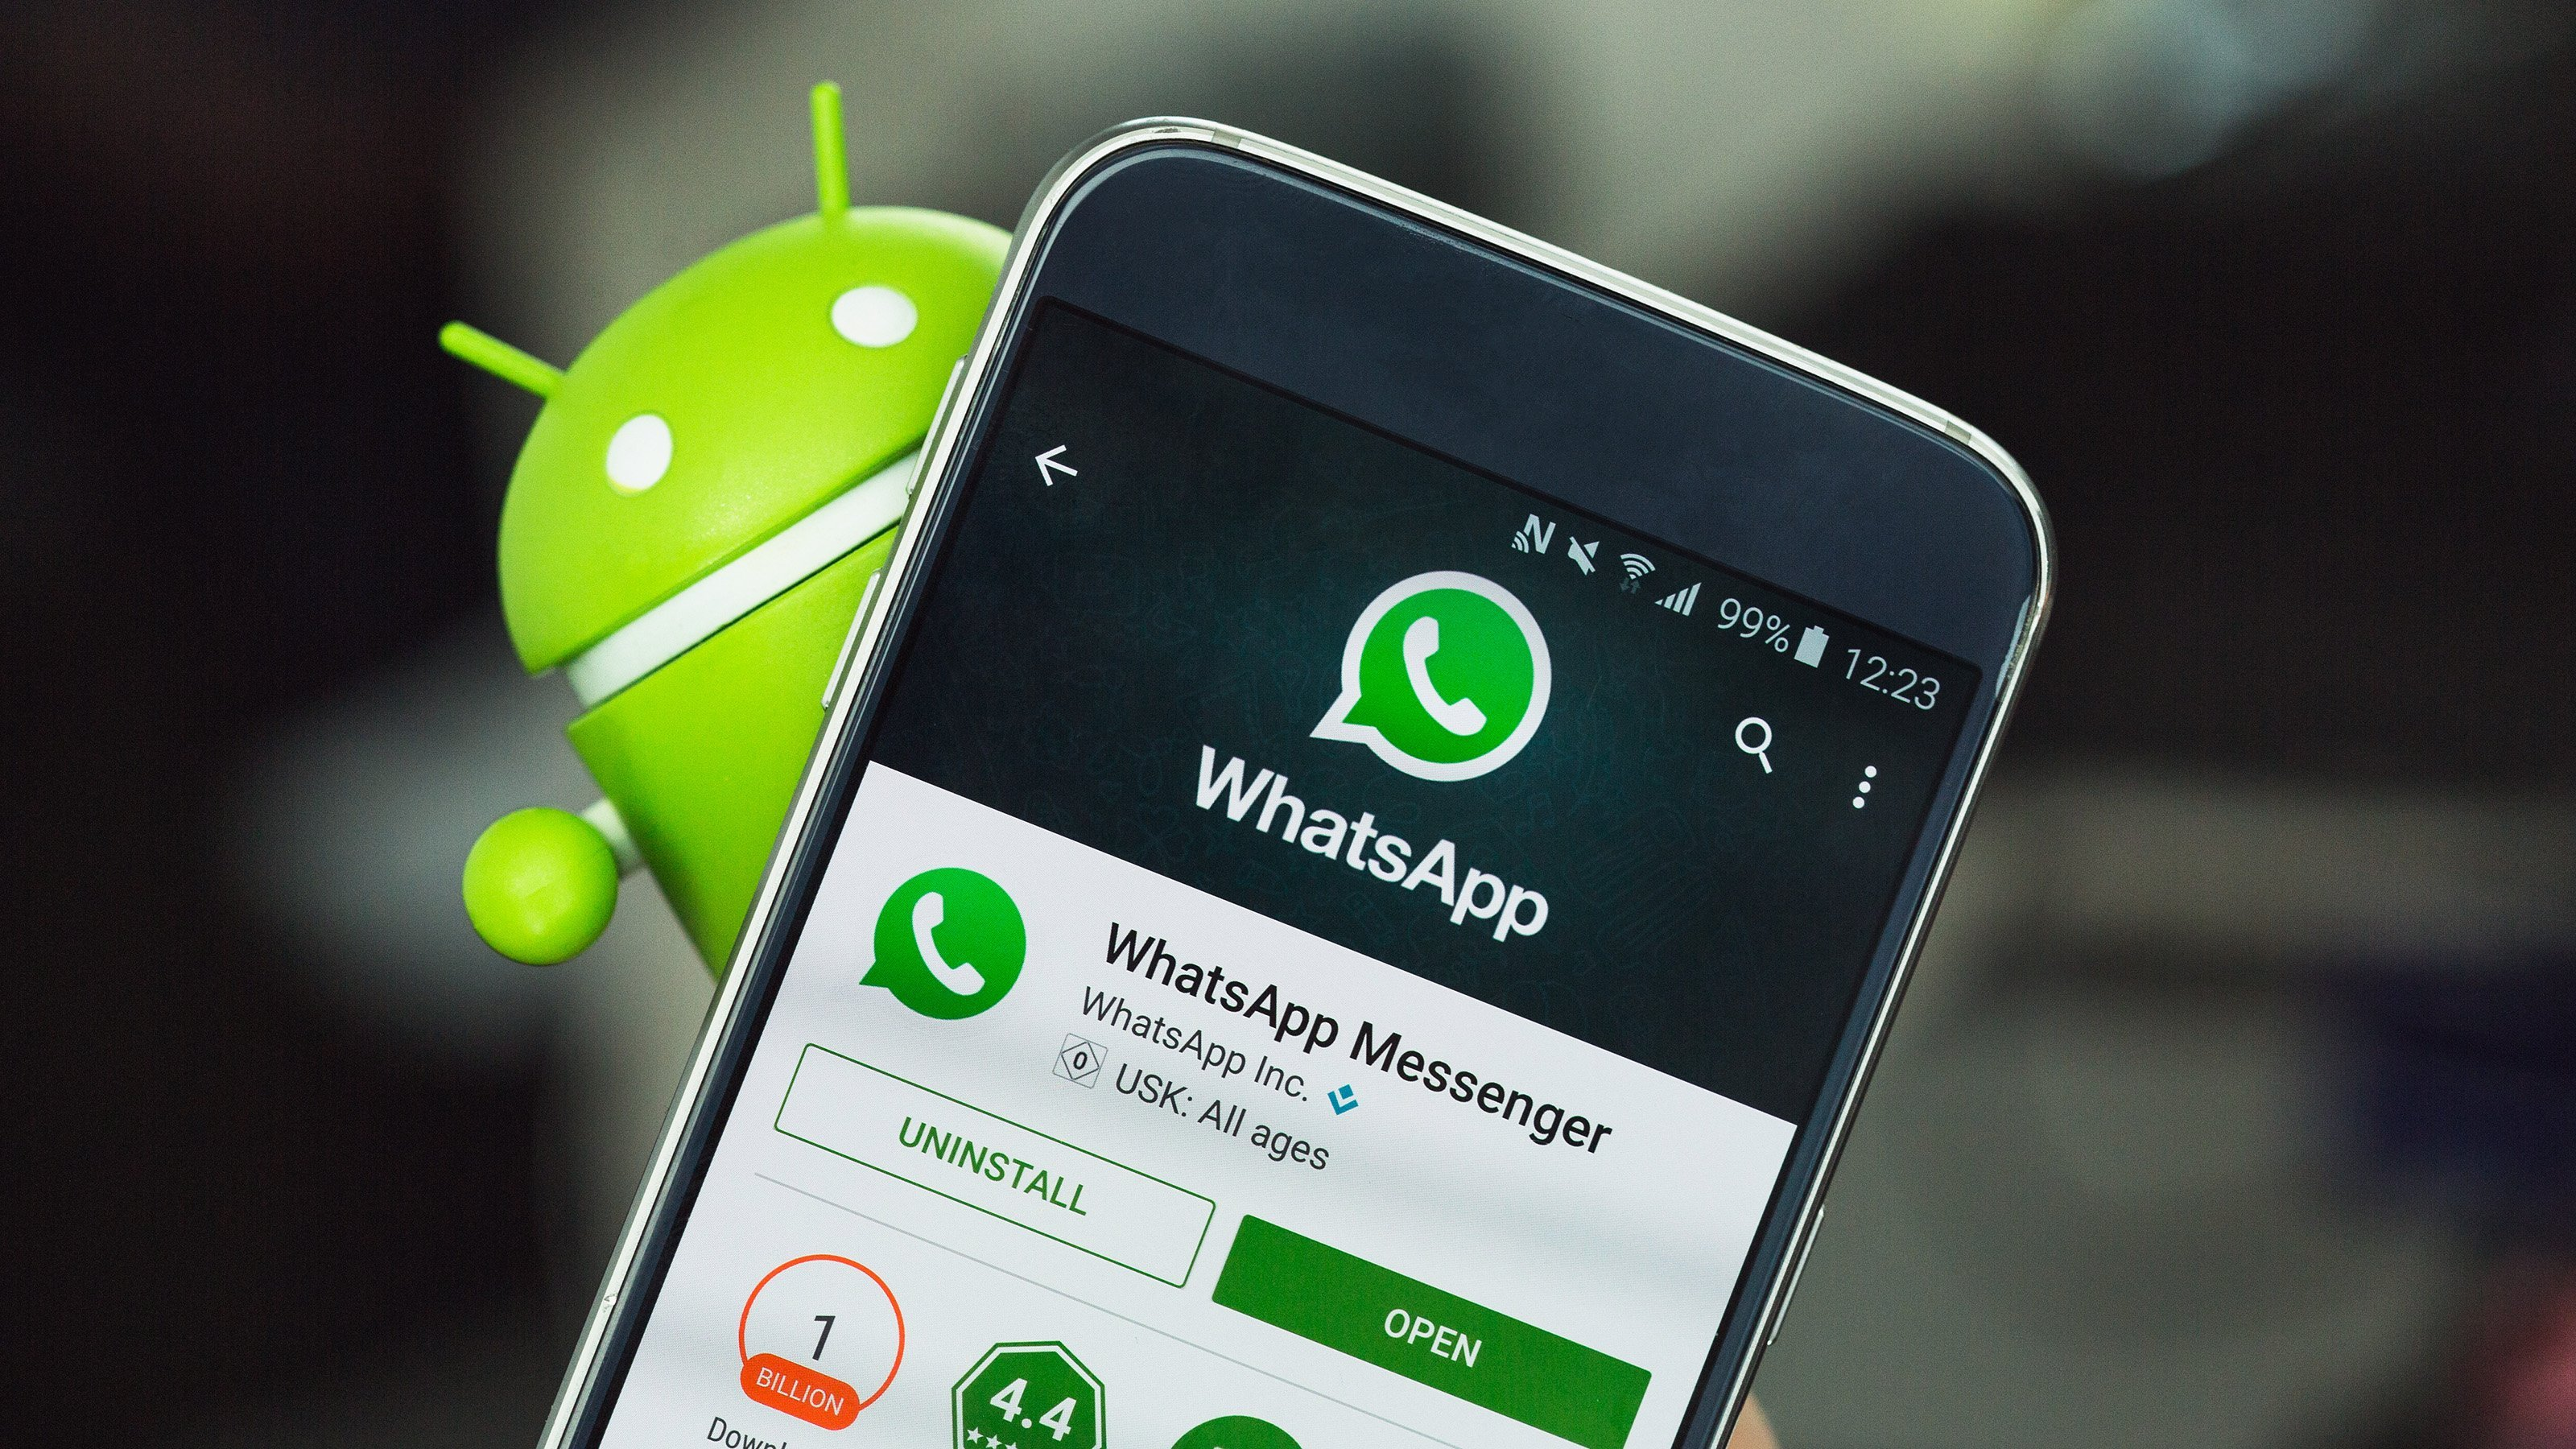 whatsapp, whatsapp for android, whatsapp for ios, whatsapp touch id, whatsapp face id